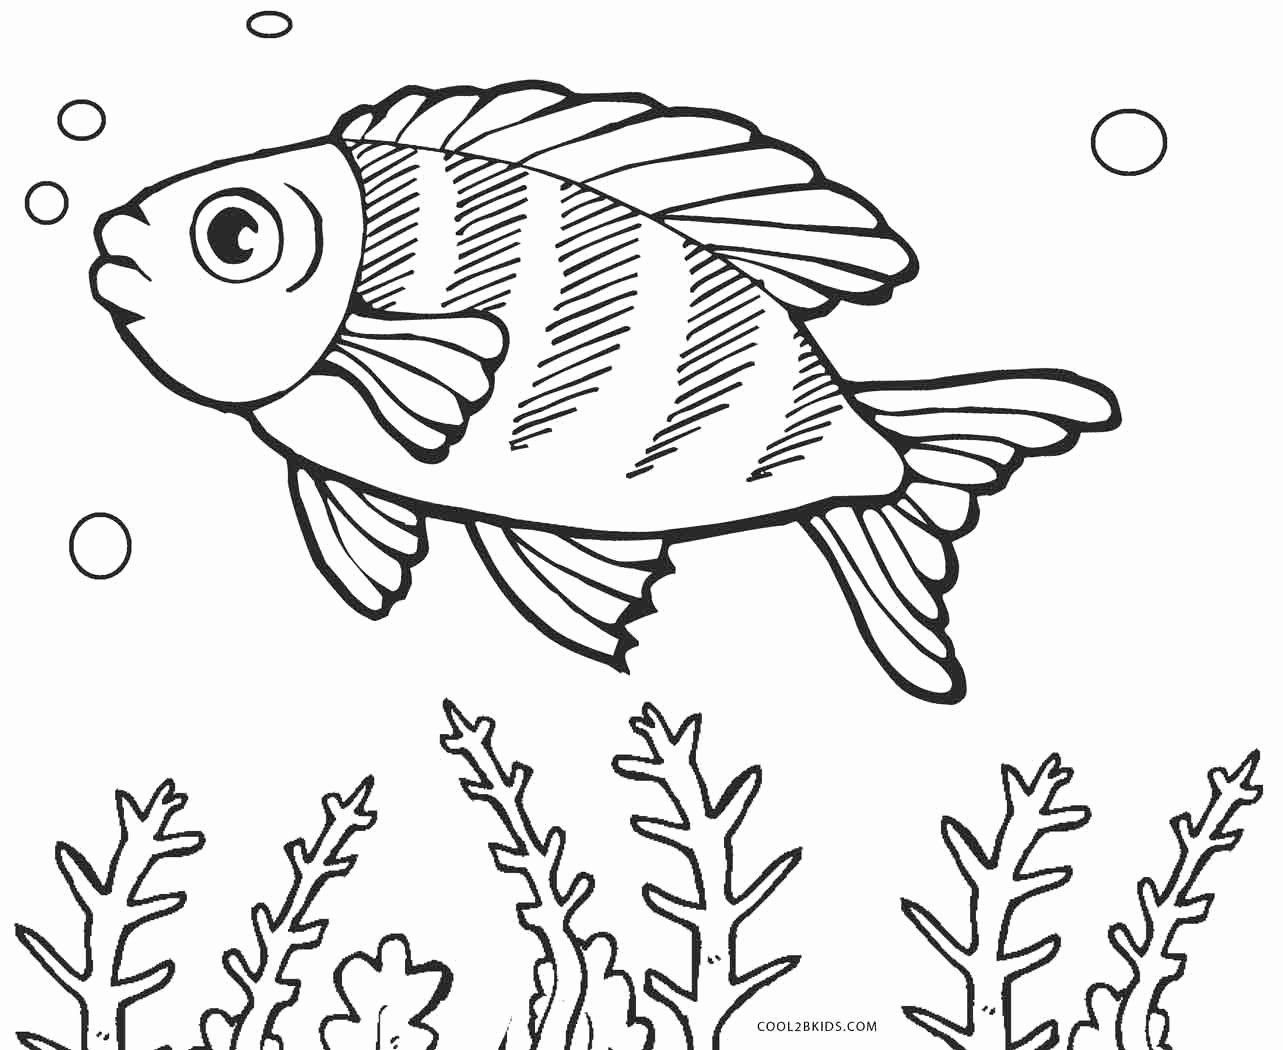 Free Printable Fish Pictures Fresh Free Printable Fish Coloring Pages for Kids